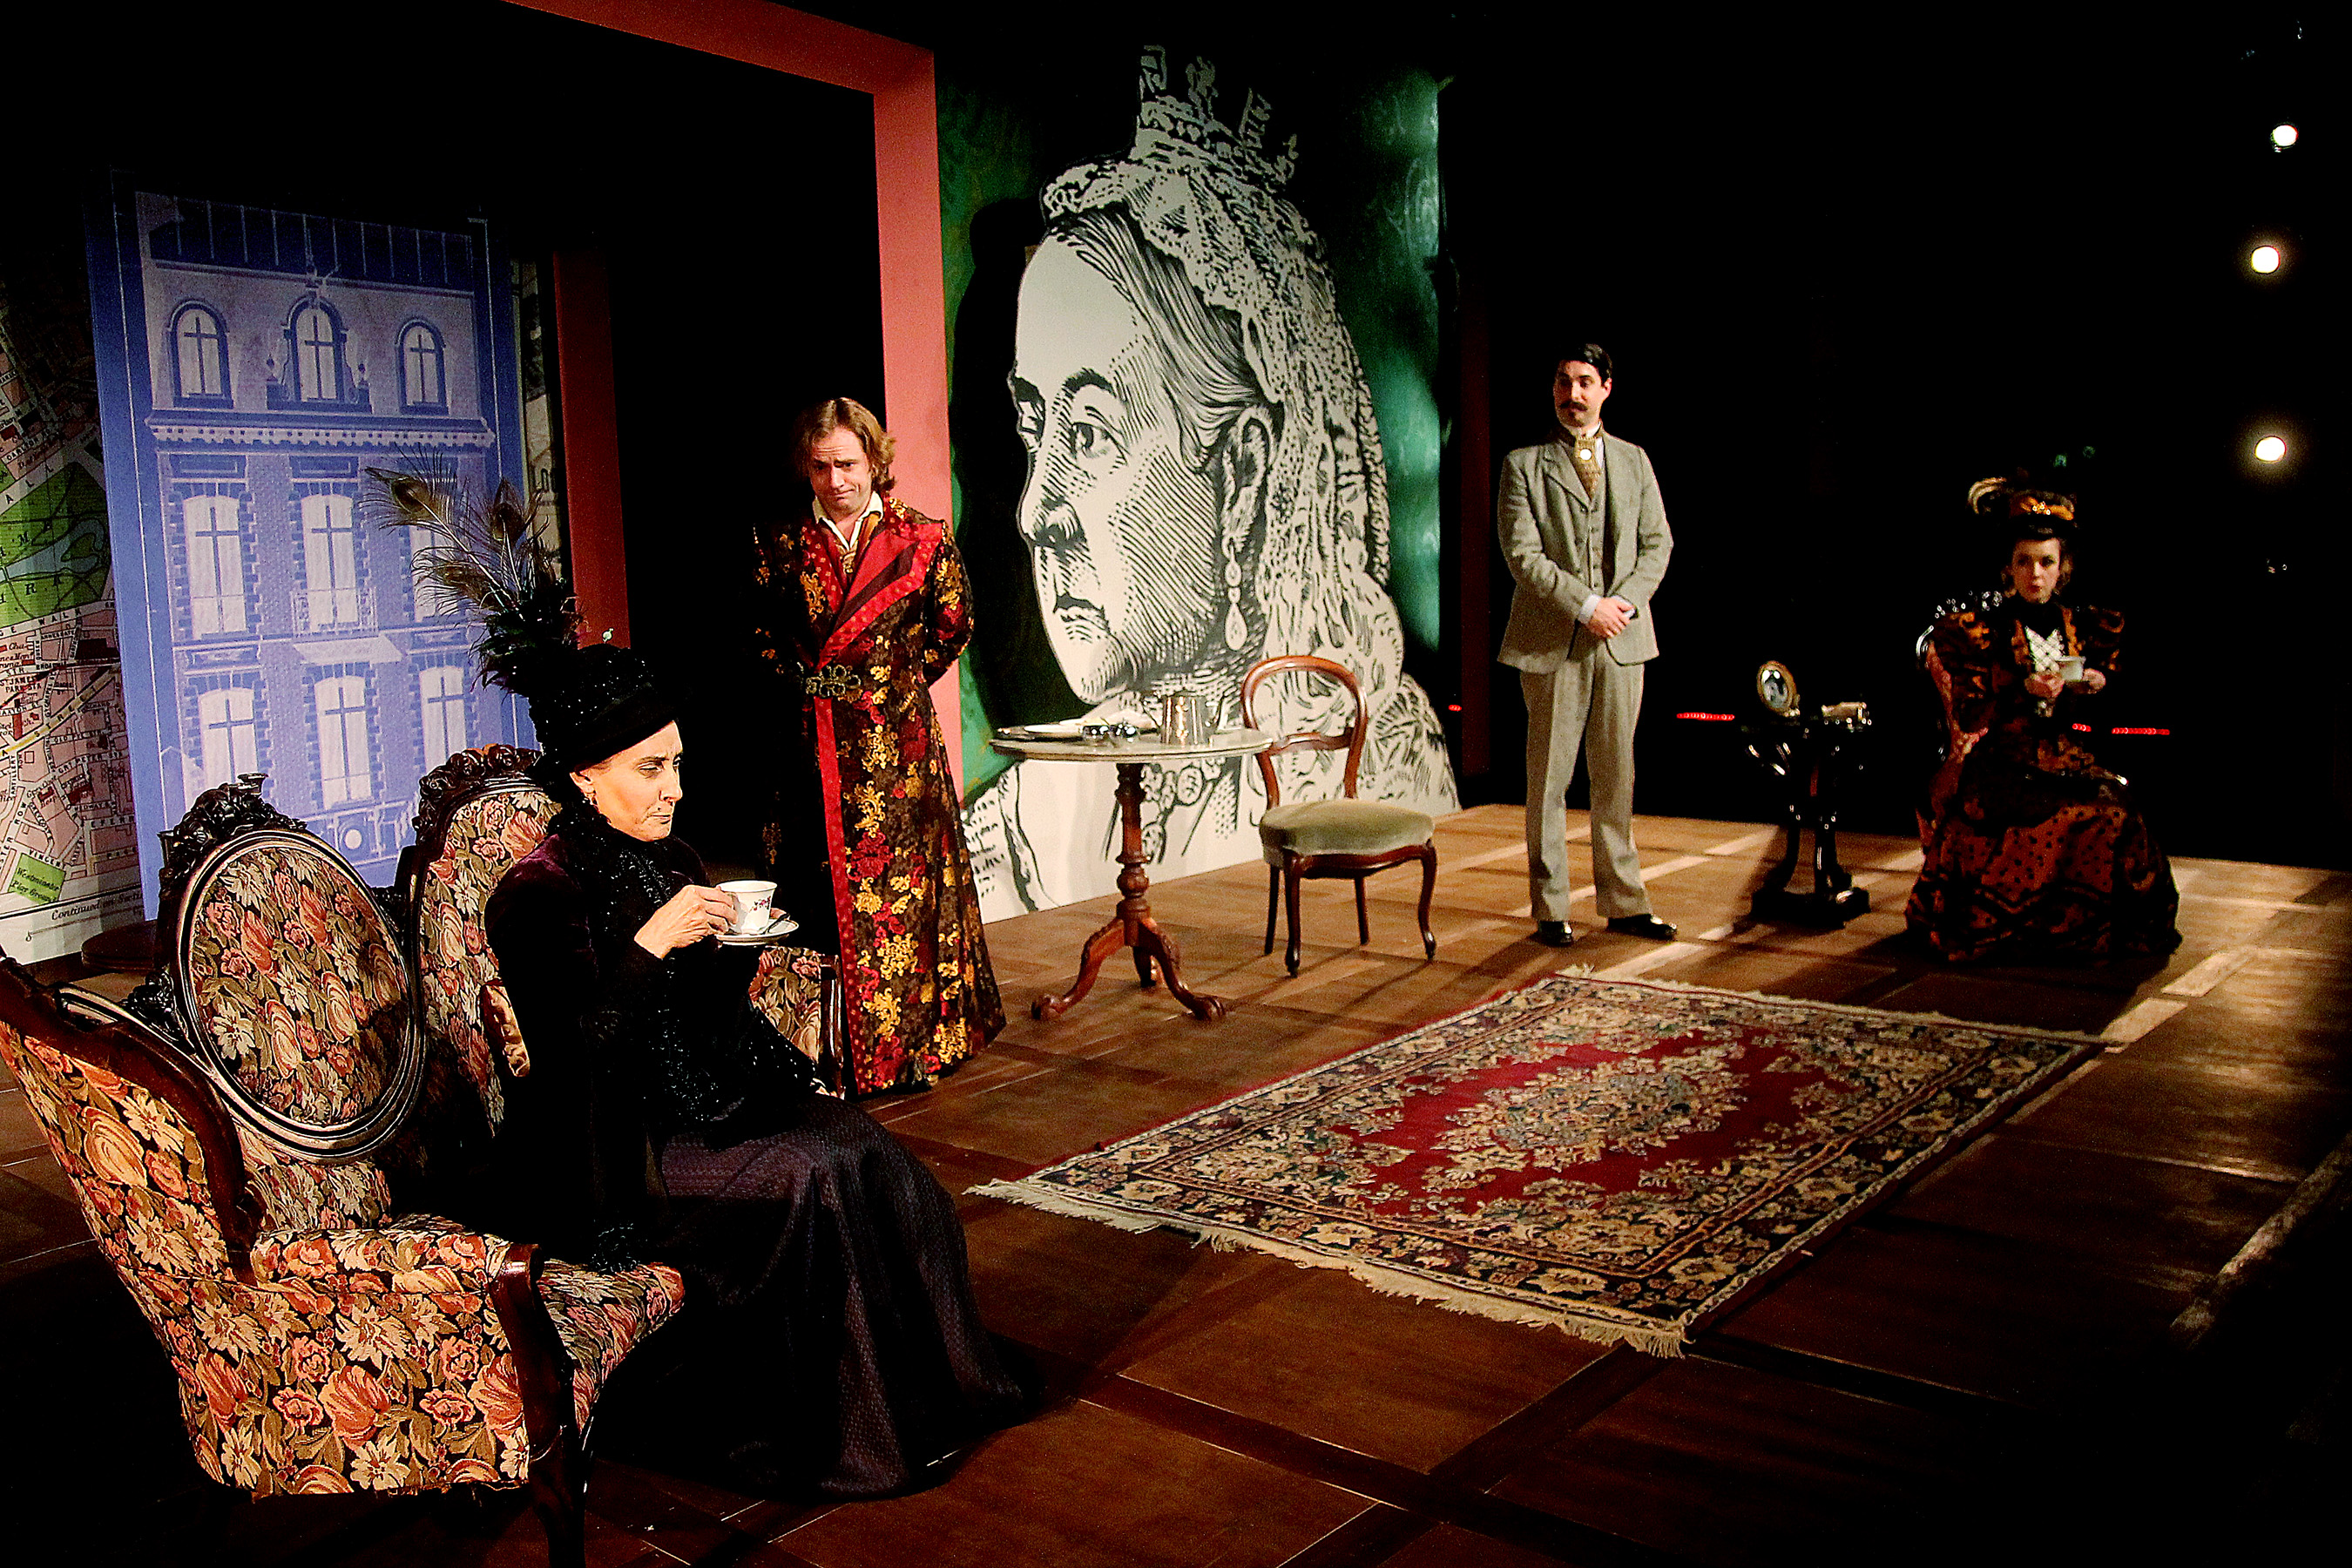 BWW Reviews: Classical Theatre Company's THE IMPORTANCE OF BEING EARNEST is a Witty, High-Gloss Production